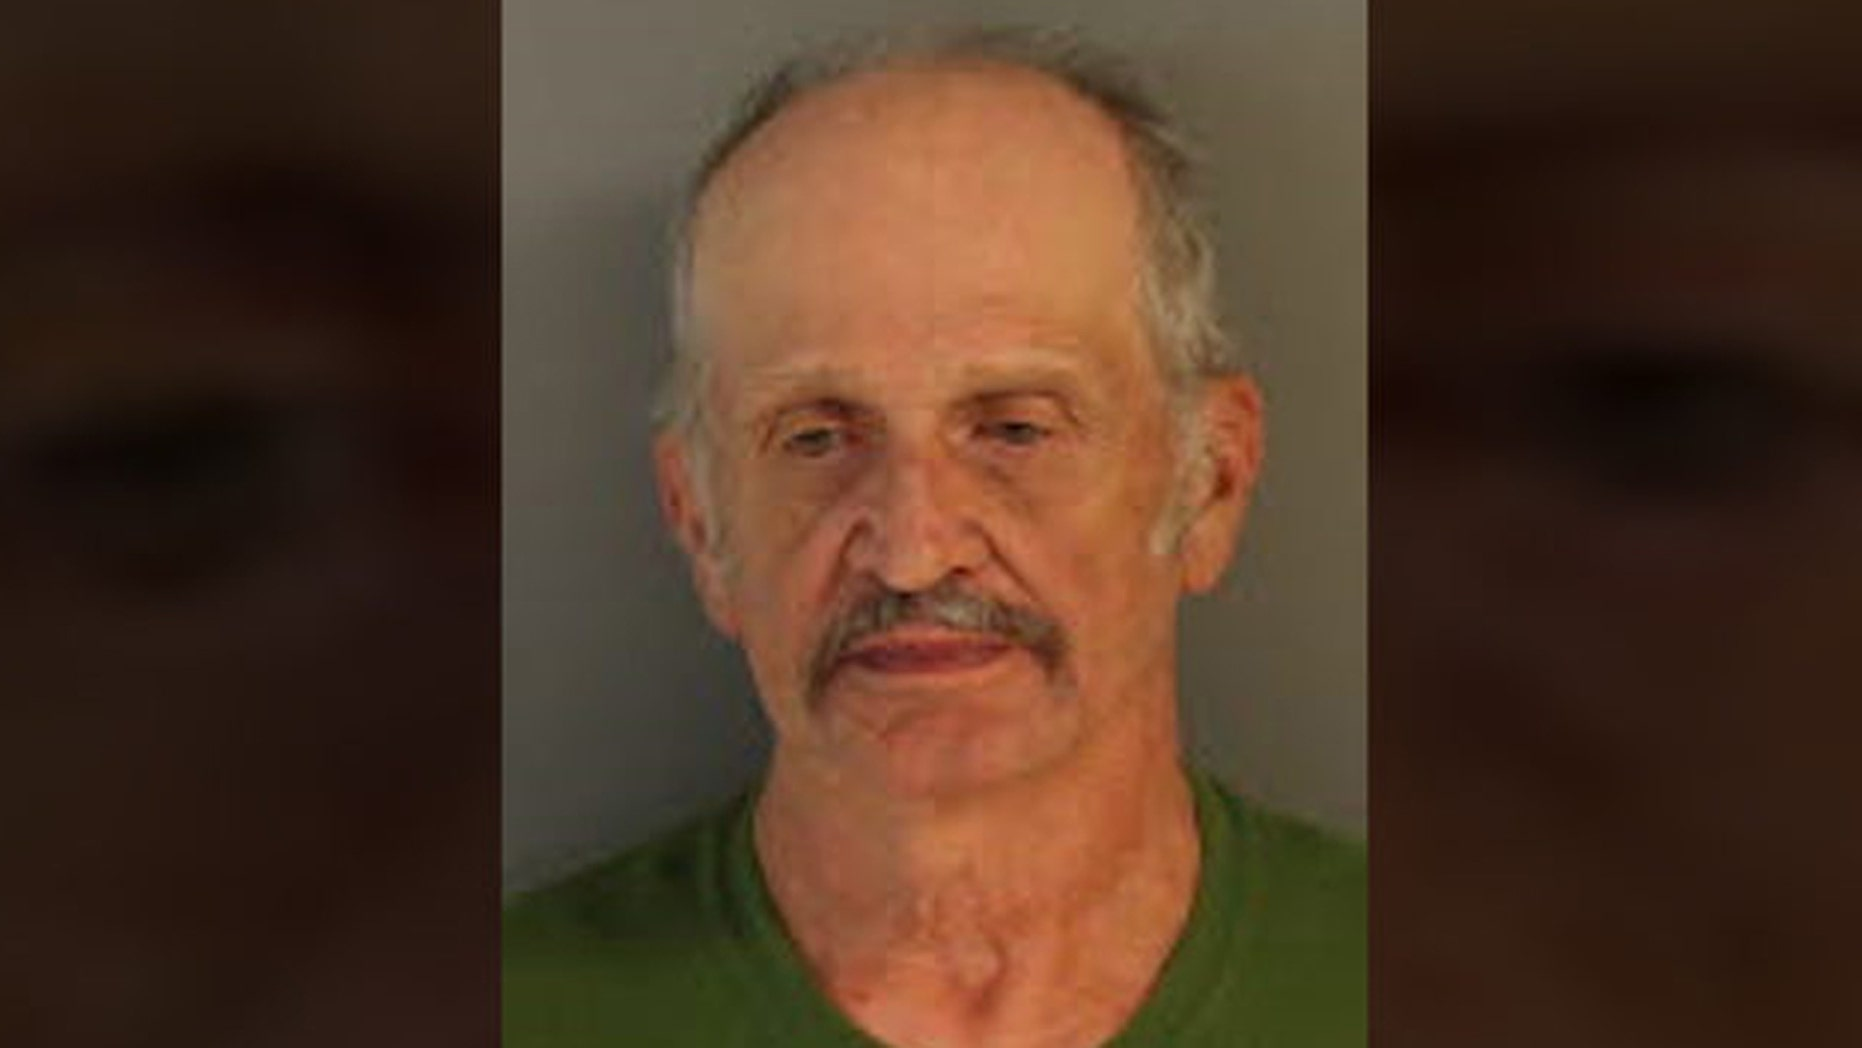 Thomas Maupin pleaded guilty to a 2001 rape.